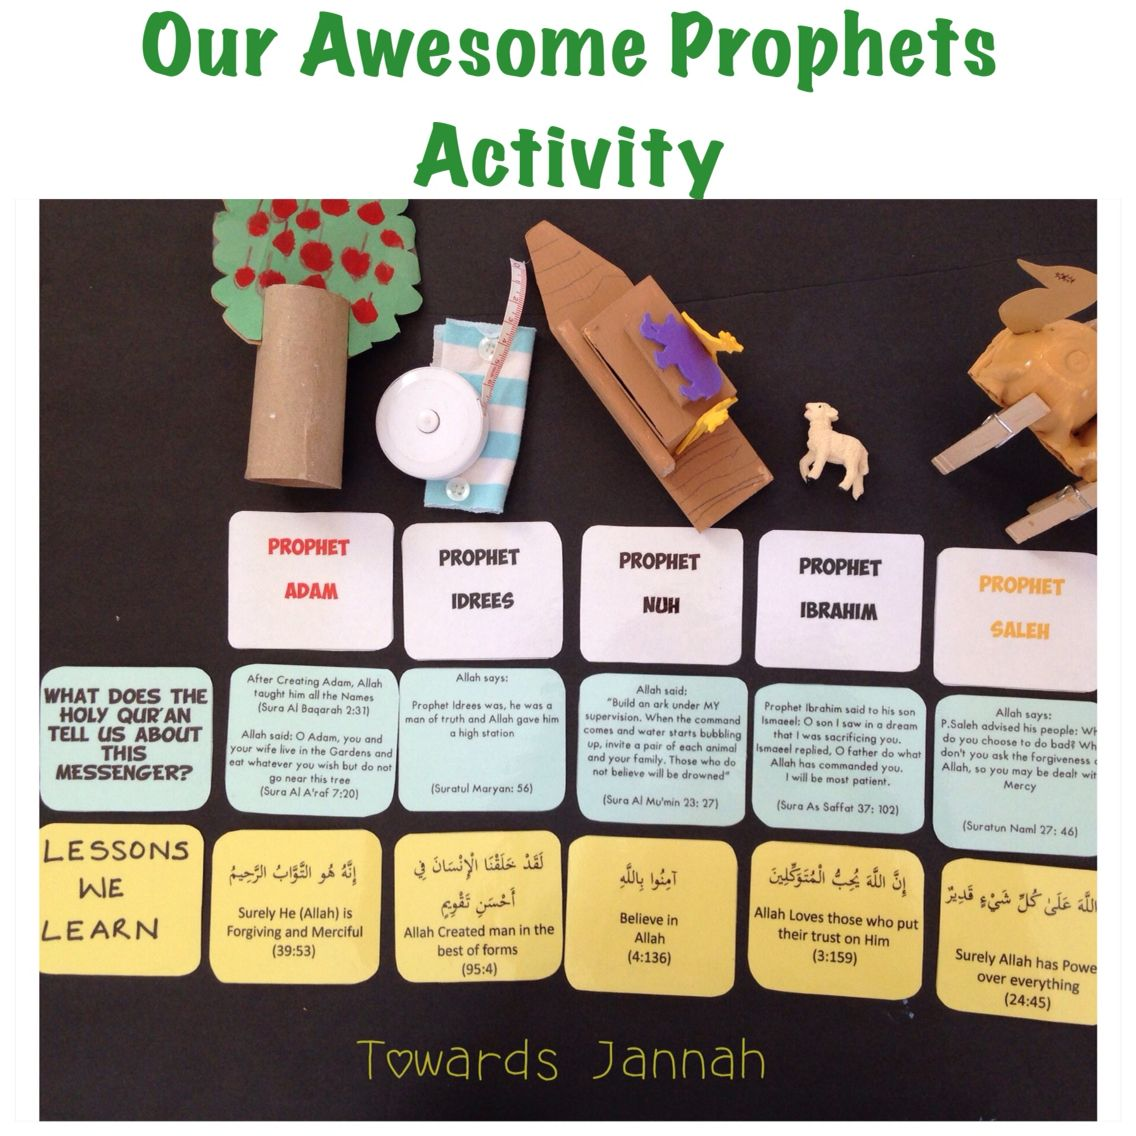 Our Awesome Prophets Activity